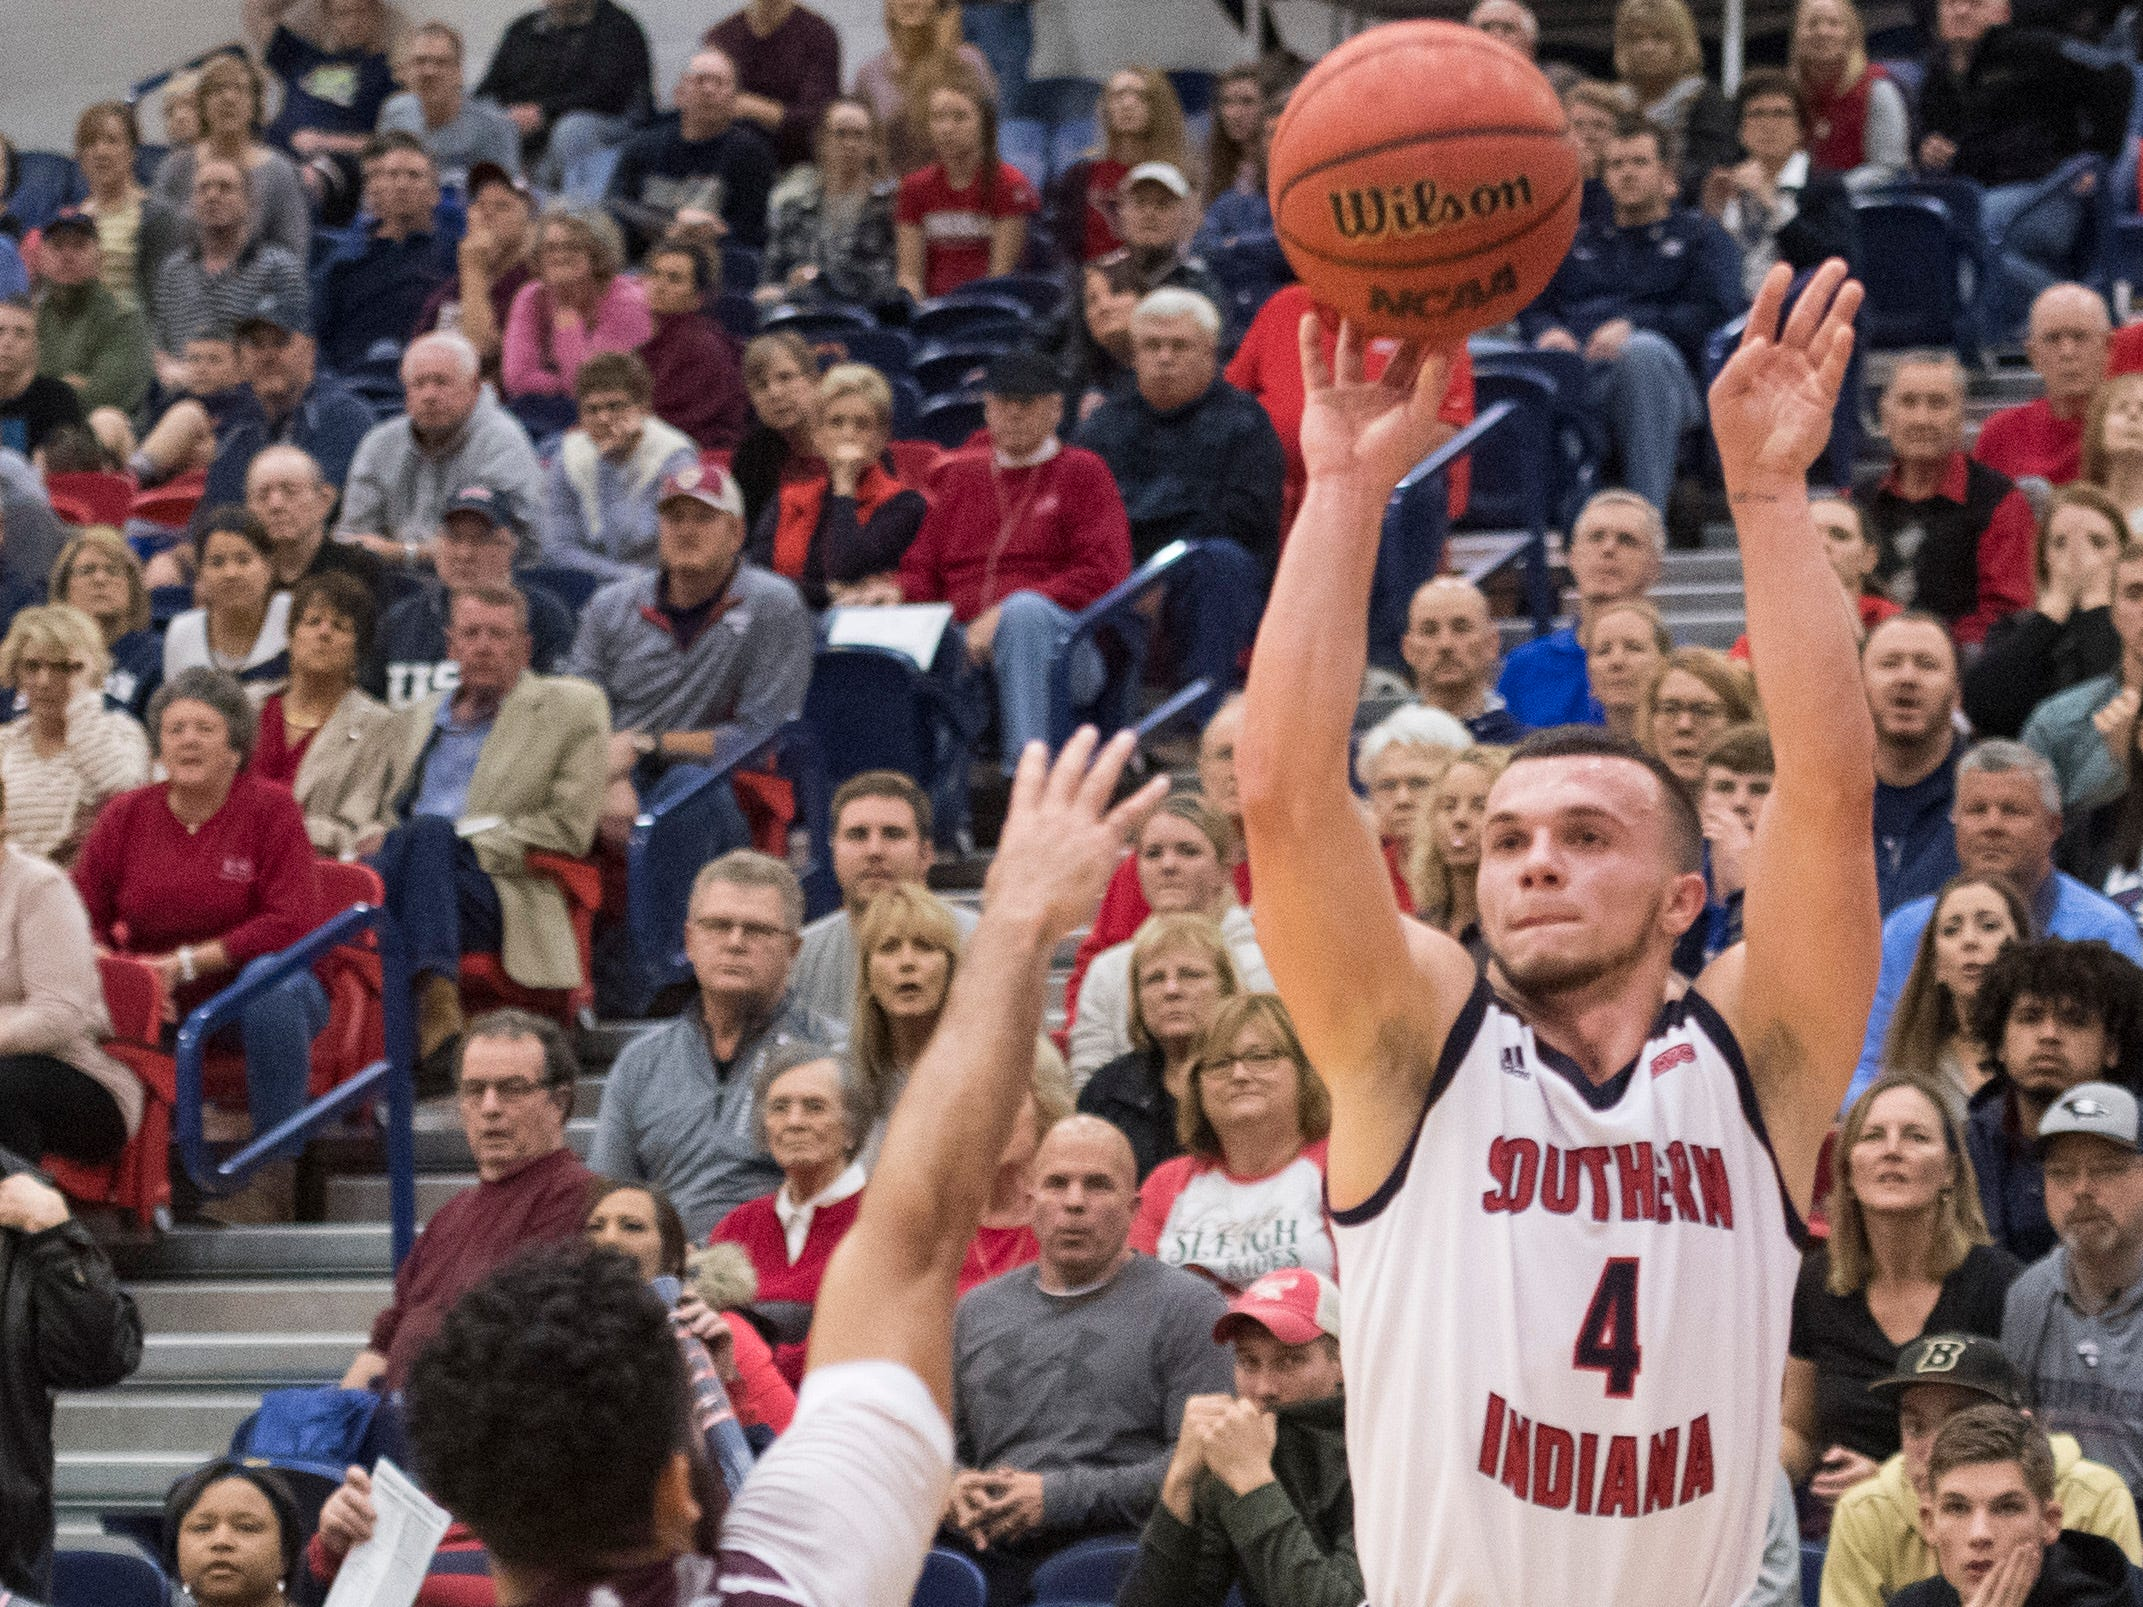 USI's Braden Fitzjerrells (4) launches a 3-pointer during the USI vs Bellarmine game at the PAC Saturday, Dec. 1, 2018.